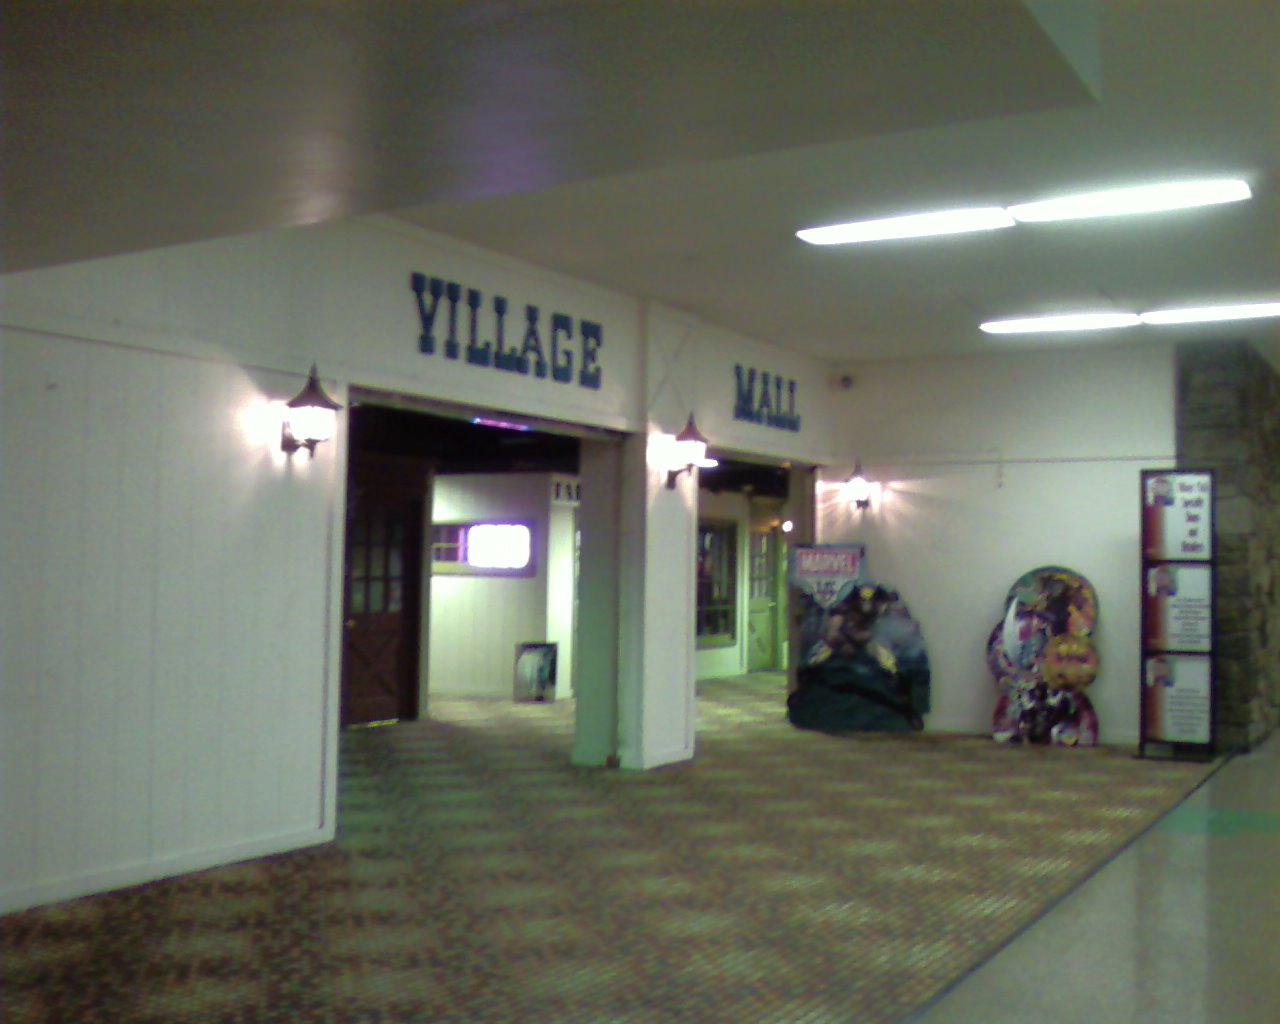 Hocus pocus magic shop - Jersey gardens mall movie theater ...